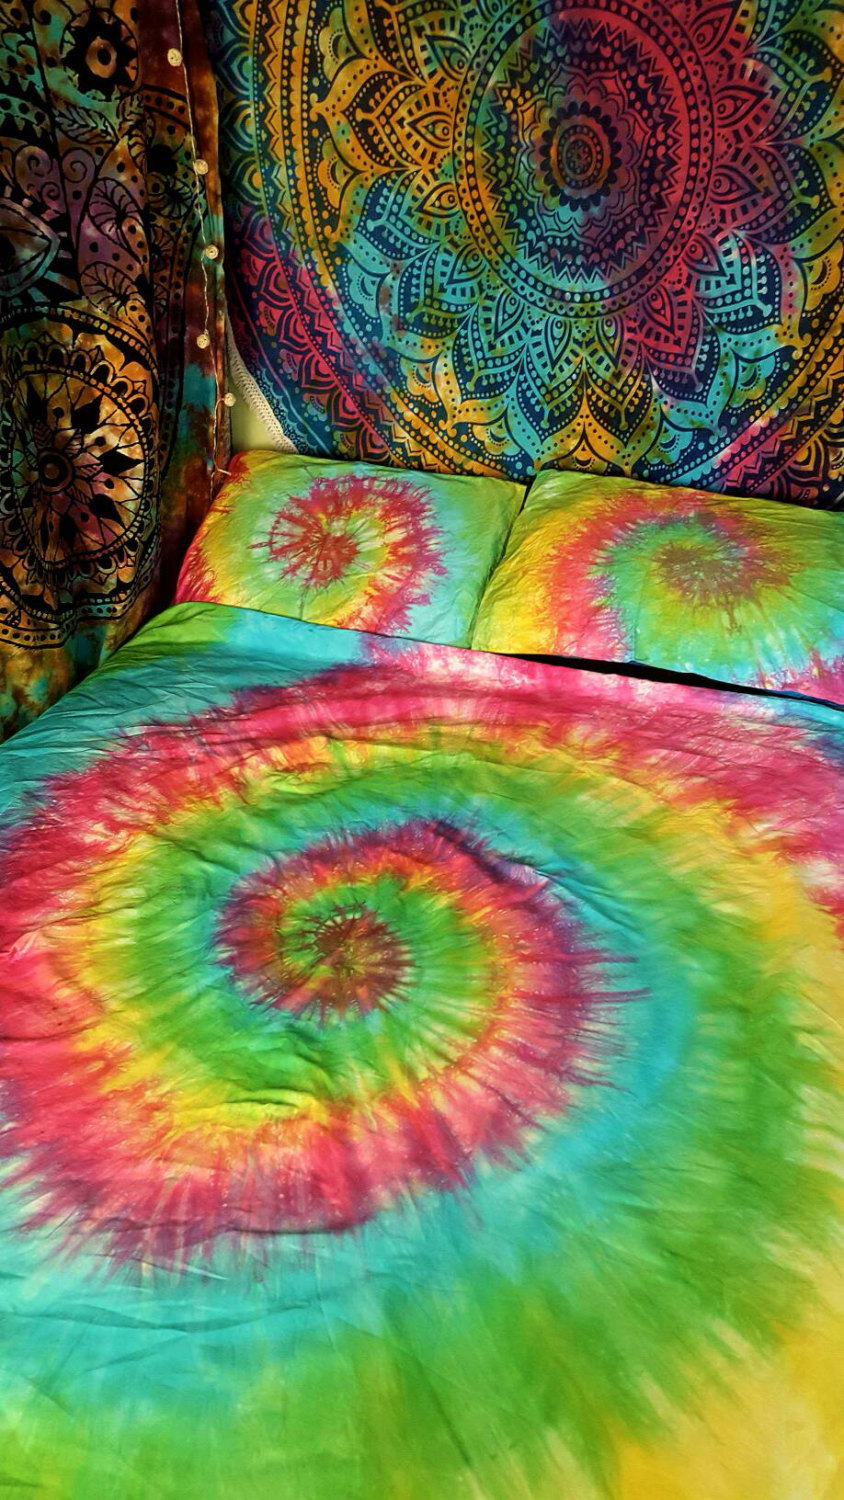 rainbow tie dye bedding photo - 6